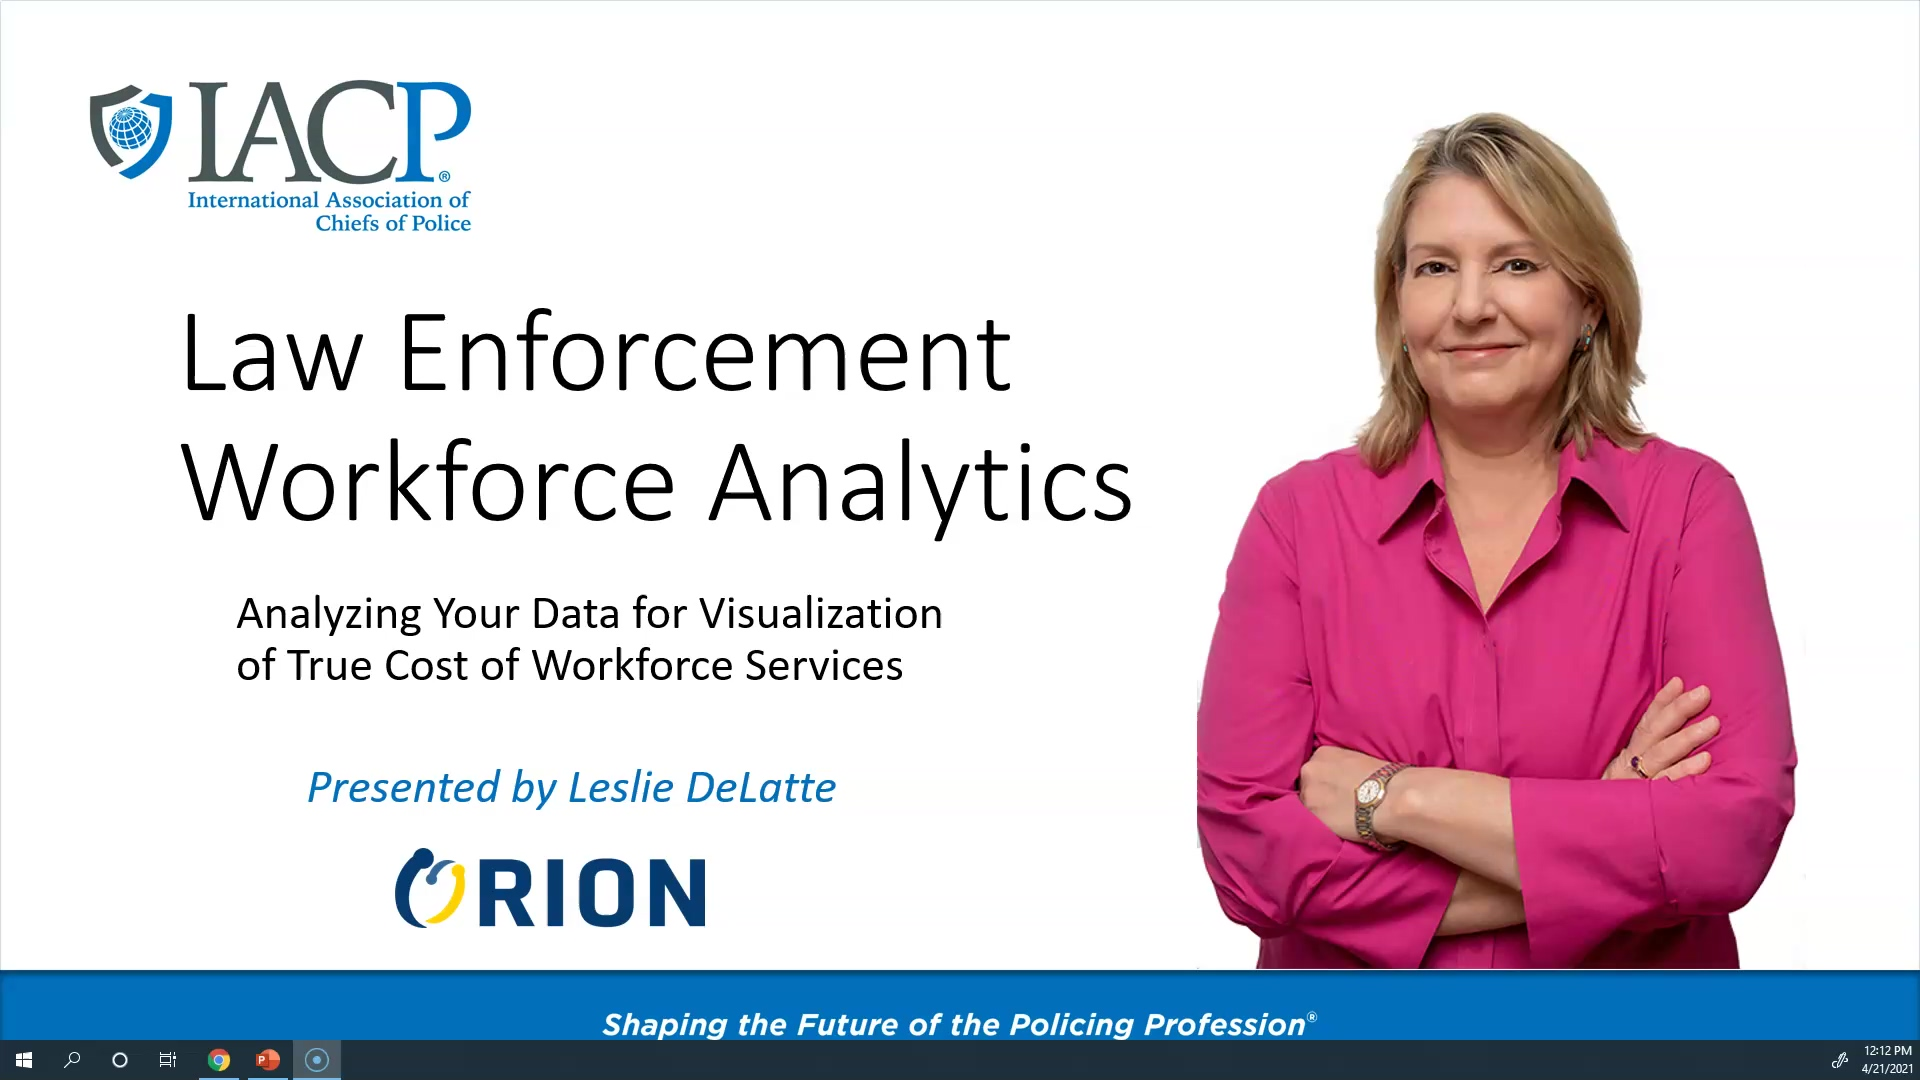 IACP_Orion Analytics for Workforce Costs